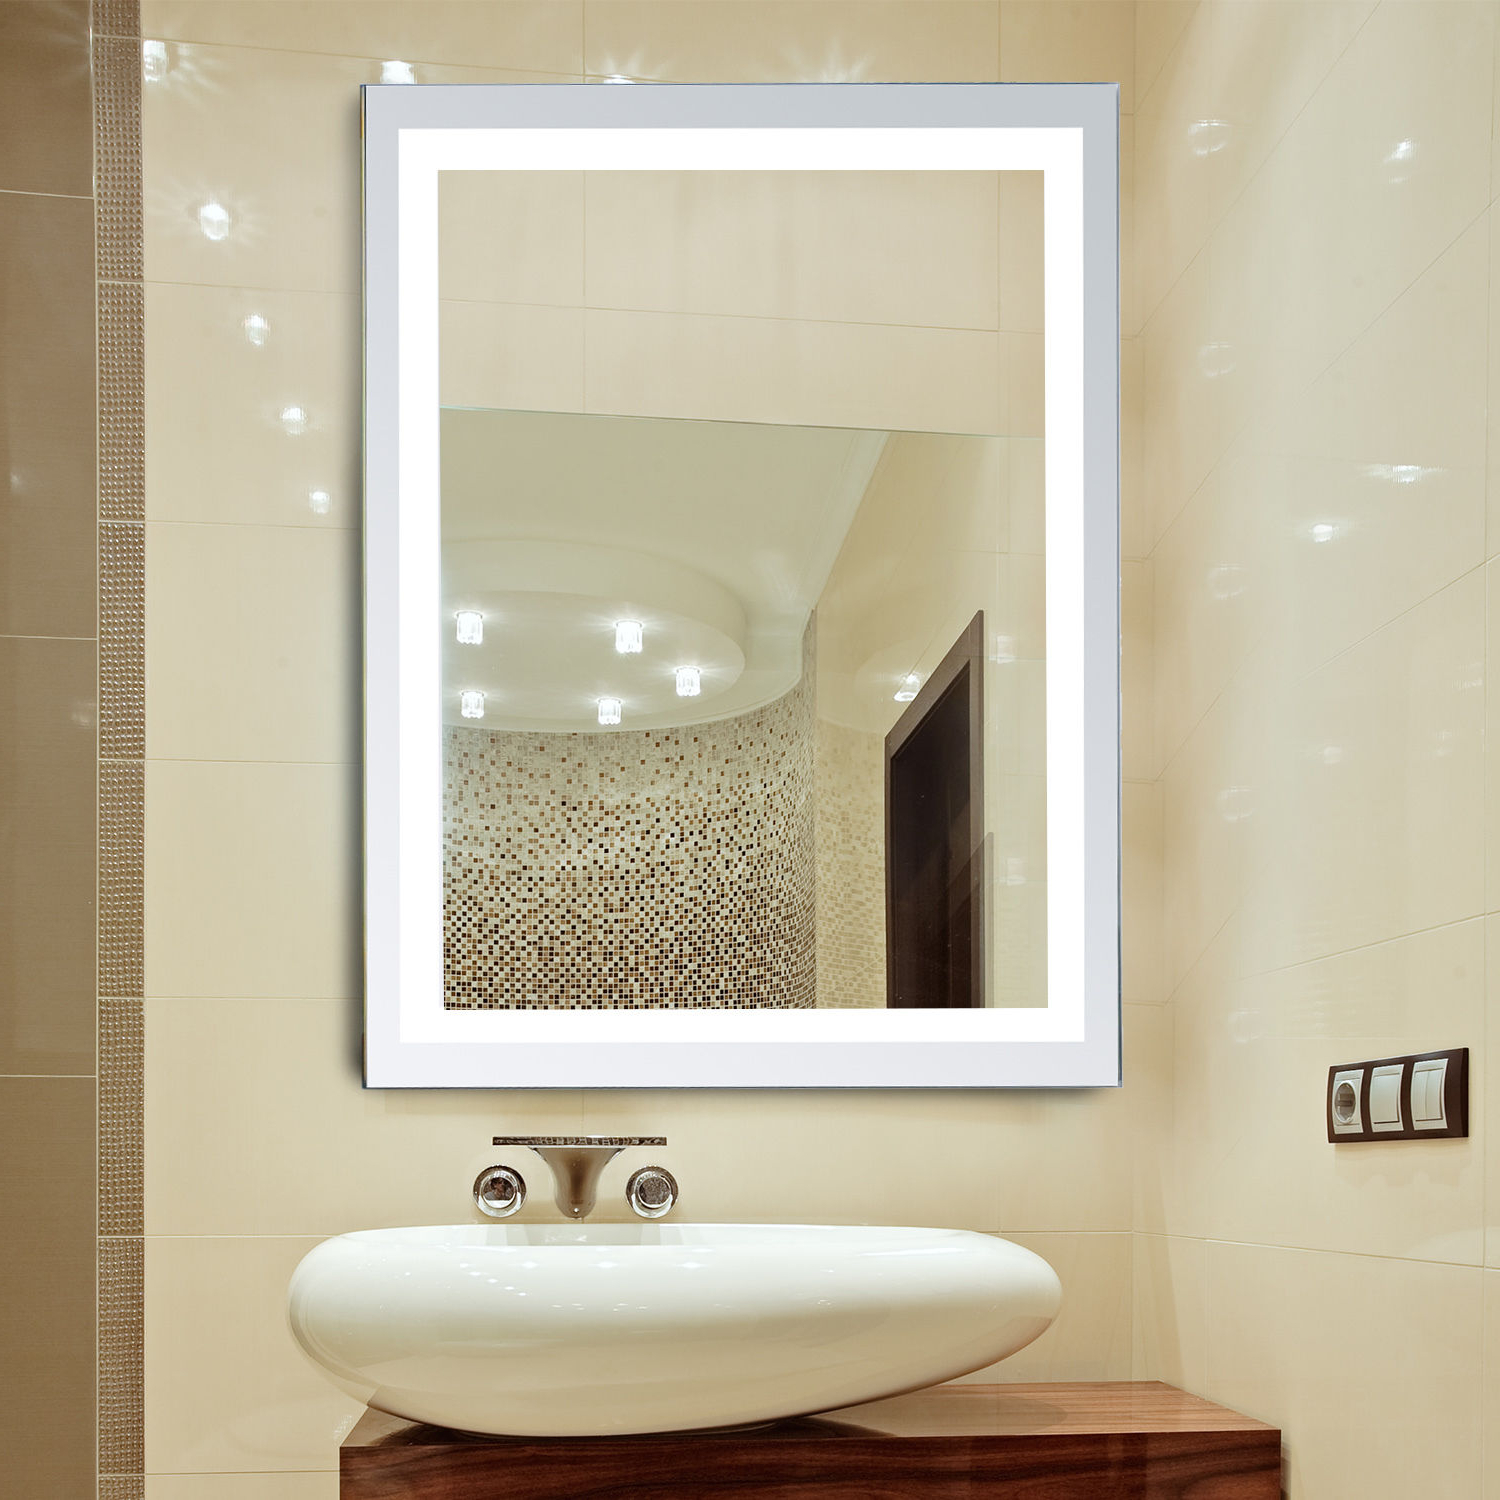 Well Liked Details About Led Illuminated Bathroom Wall Mirrors With Lights Modern Makeup Vanity Mirror Within Makeup Wall Mirrors (Gallery 4 of 20)